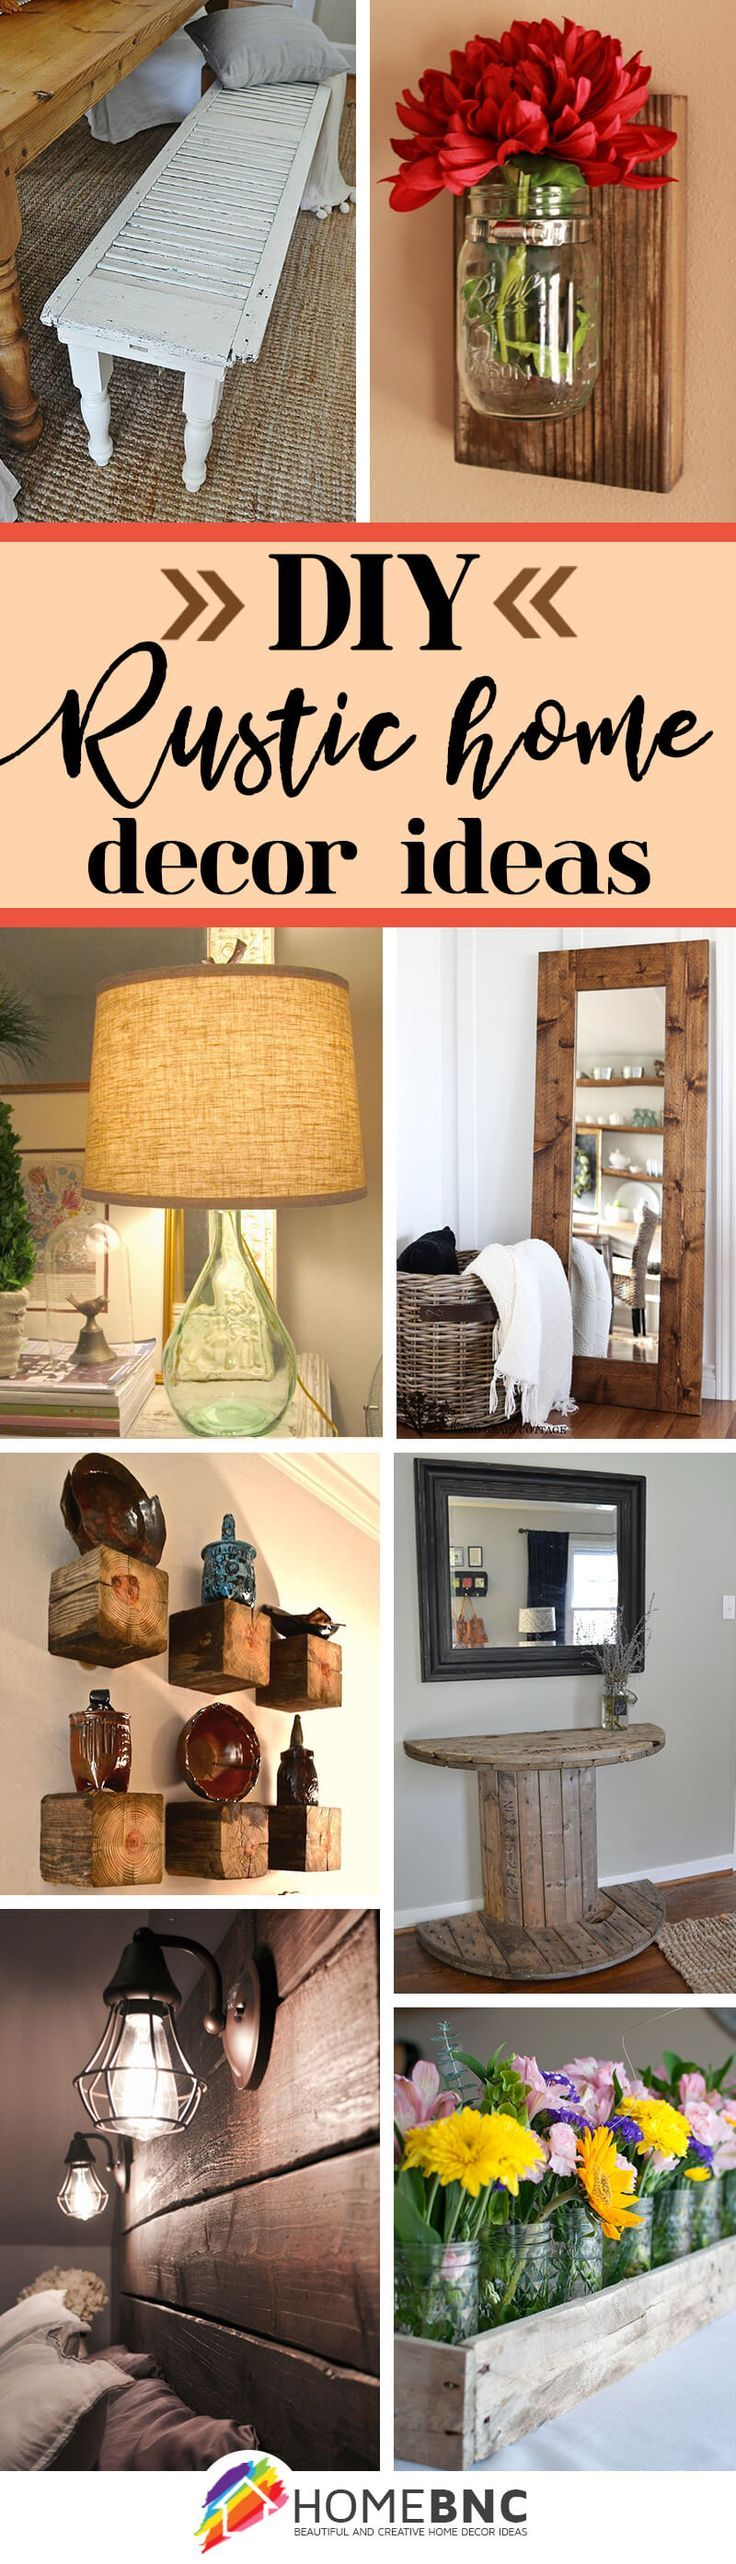 The best images about apartment lifeee on pinterest